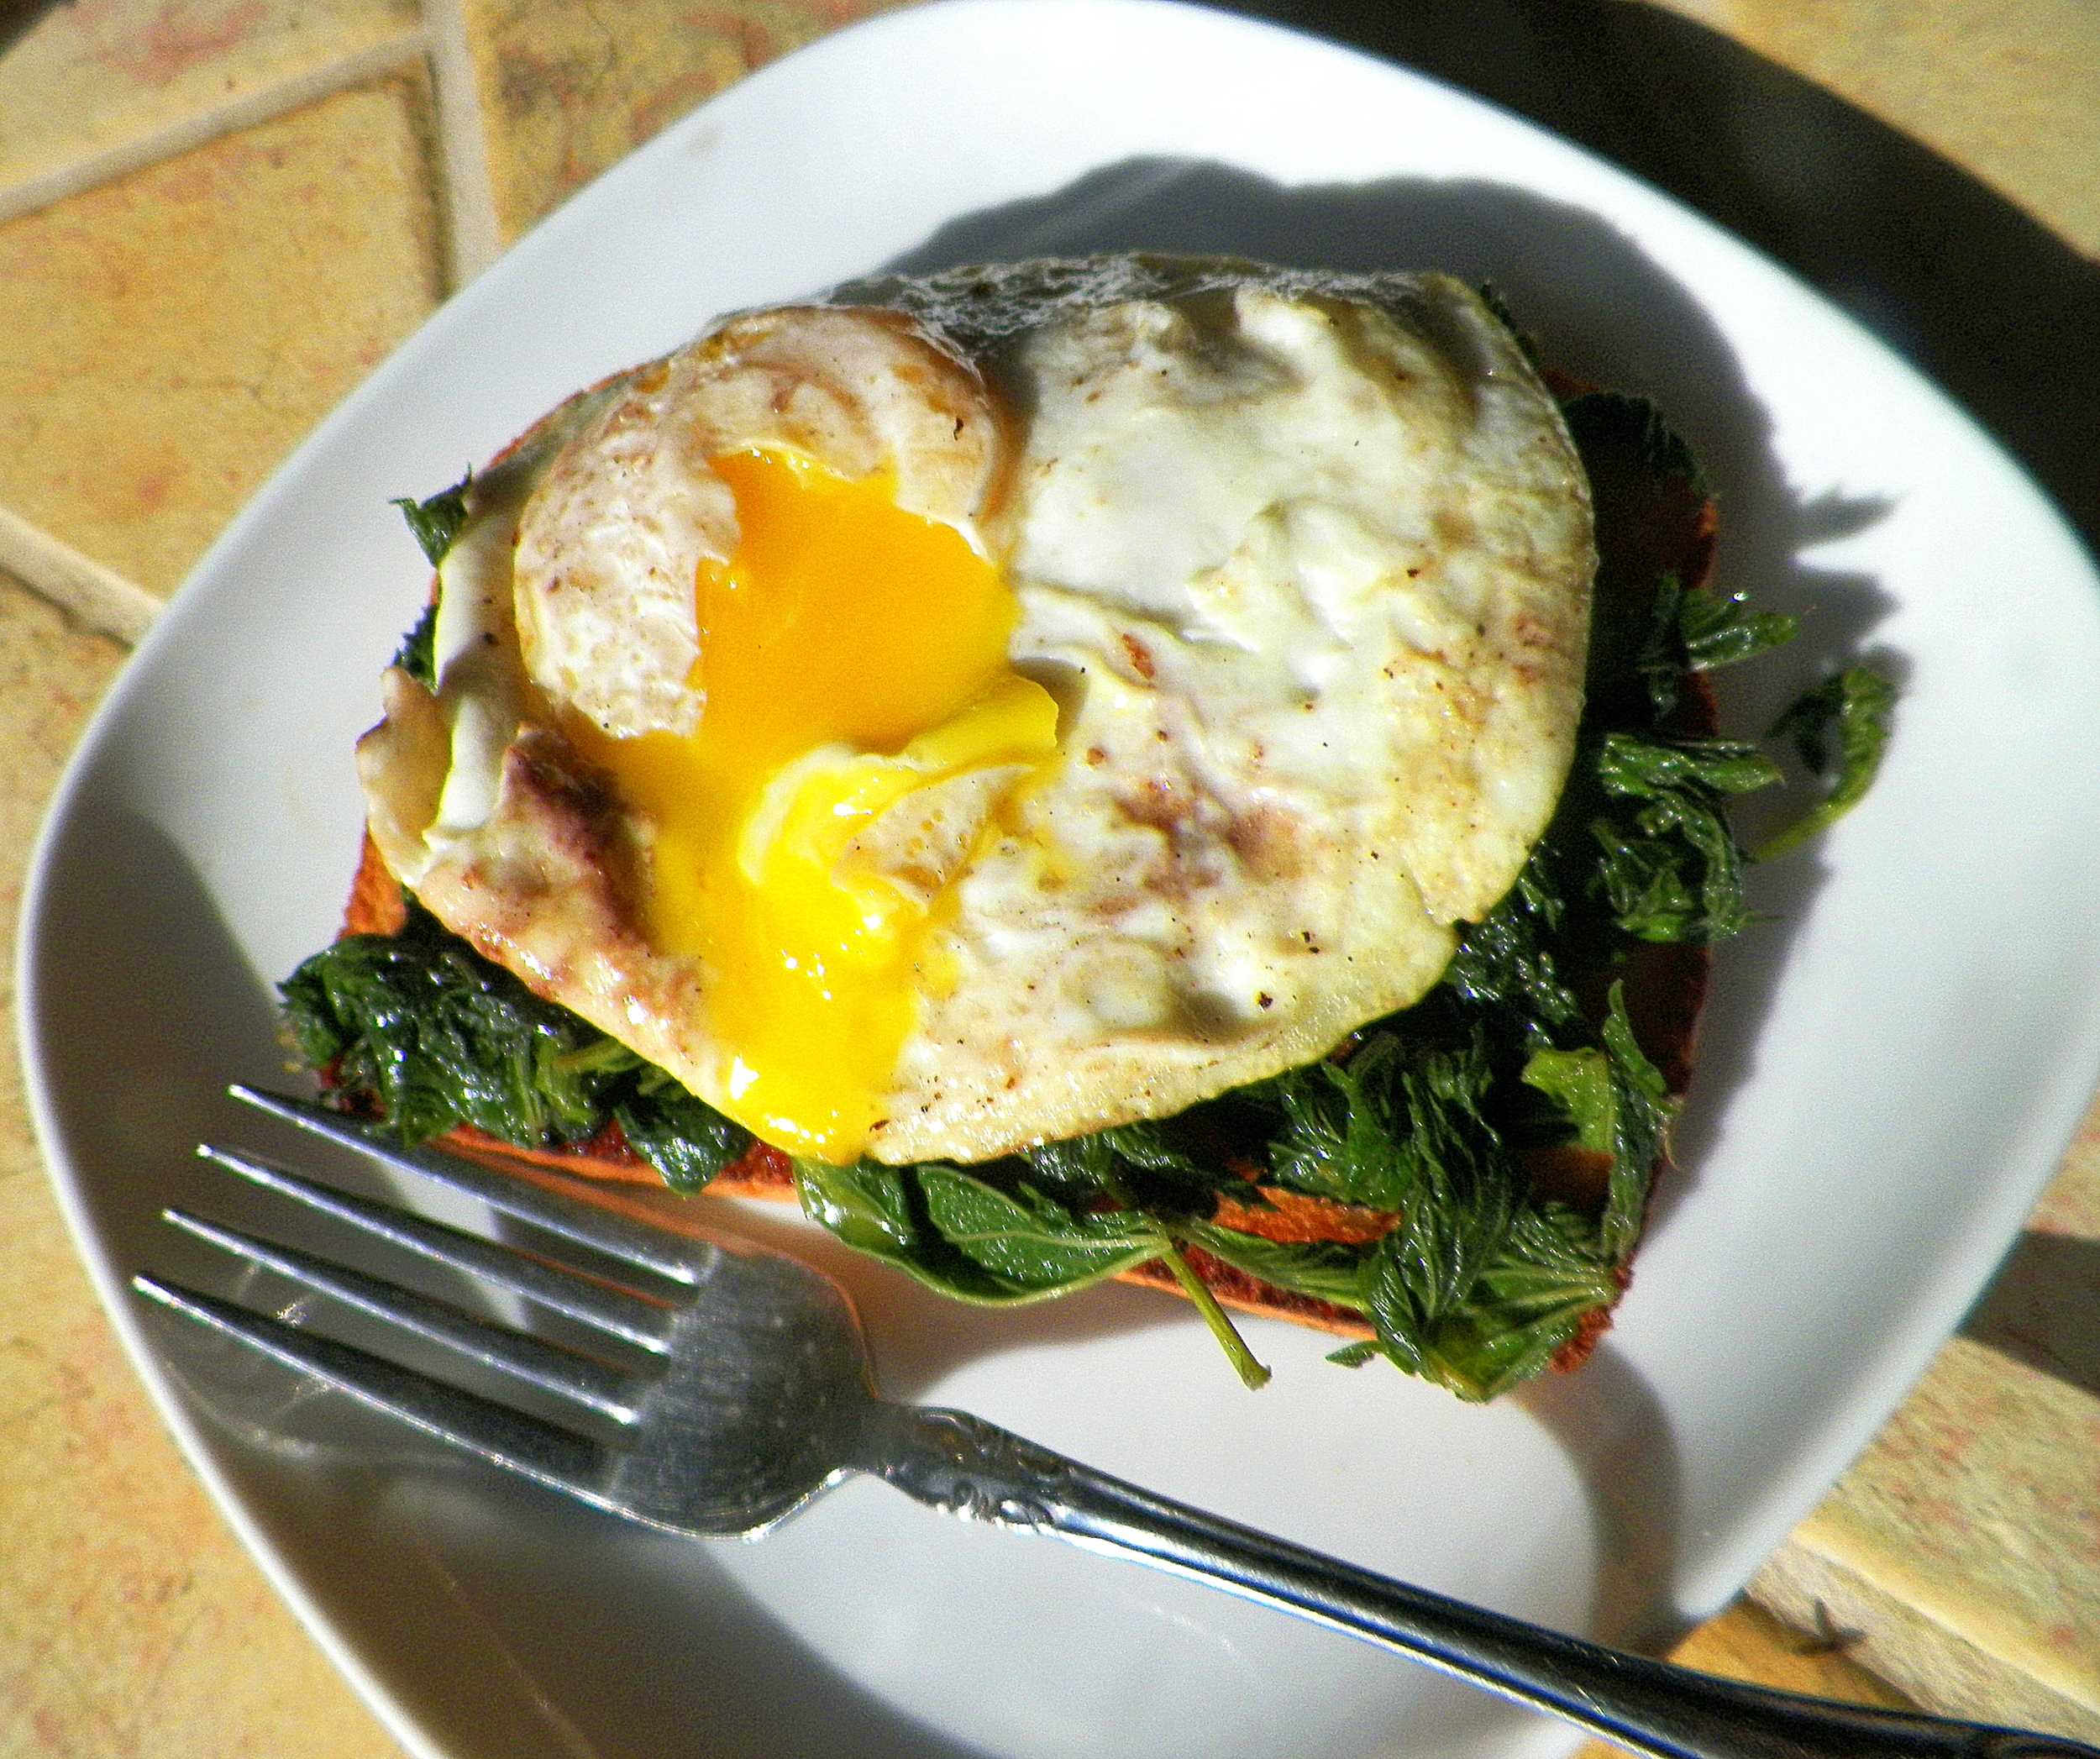 Simple breakfast: stinging nettles & egg on toast.